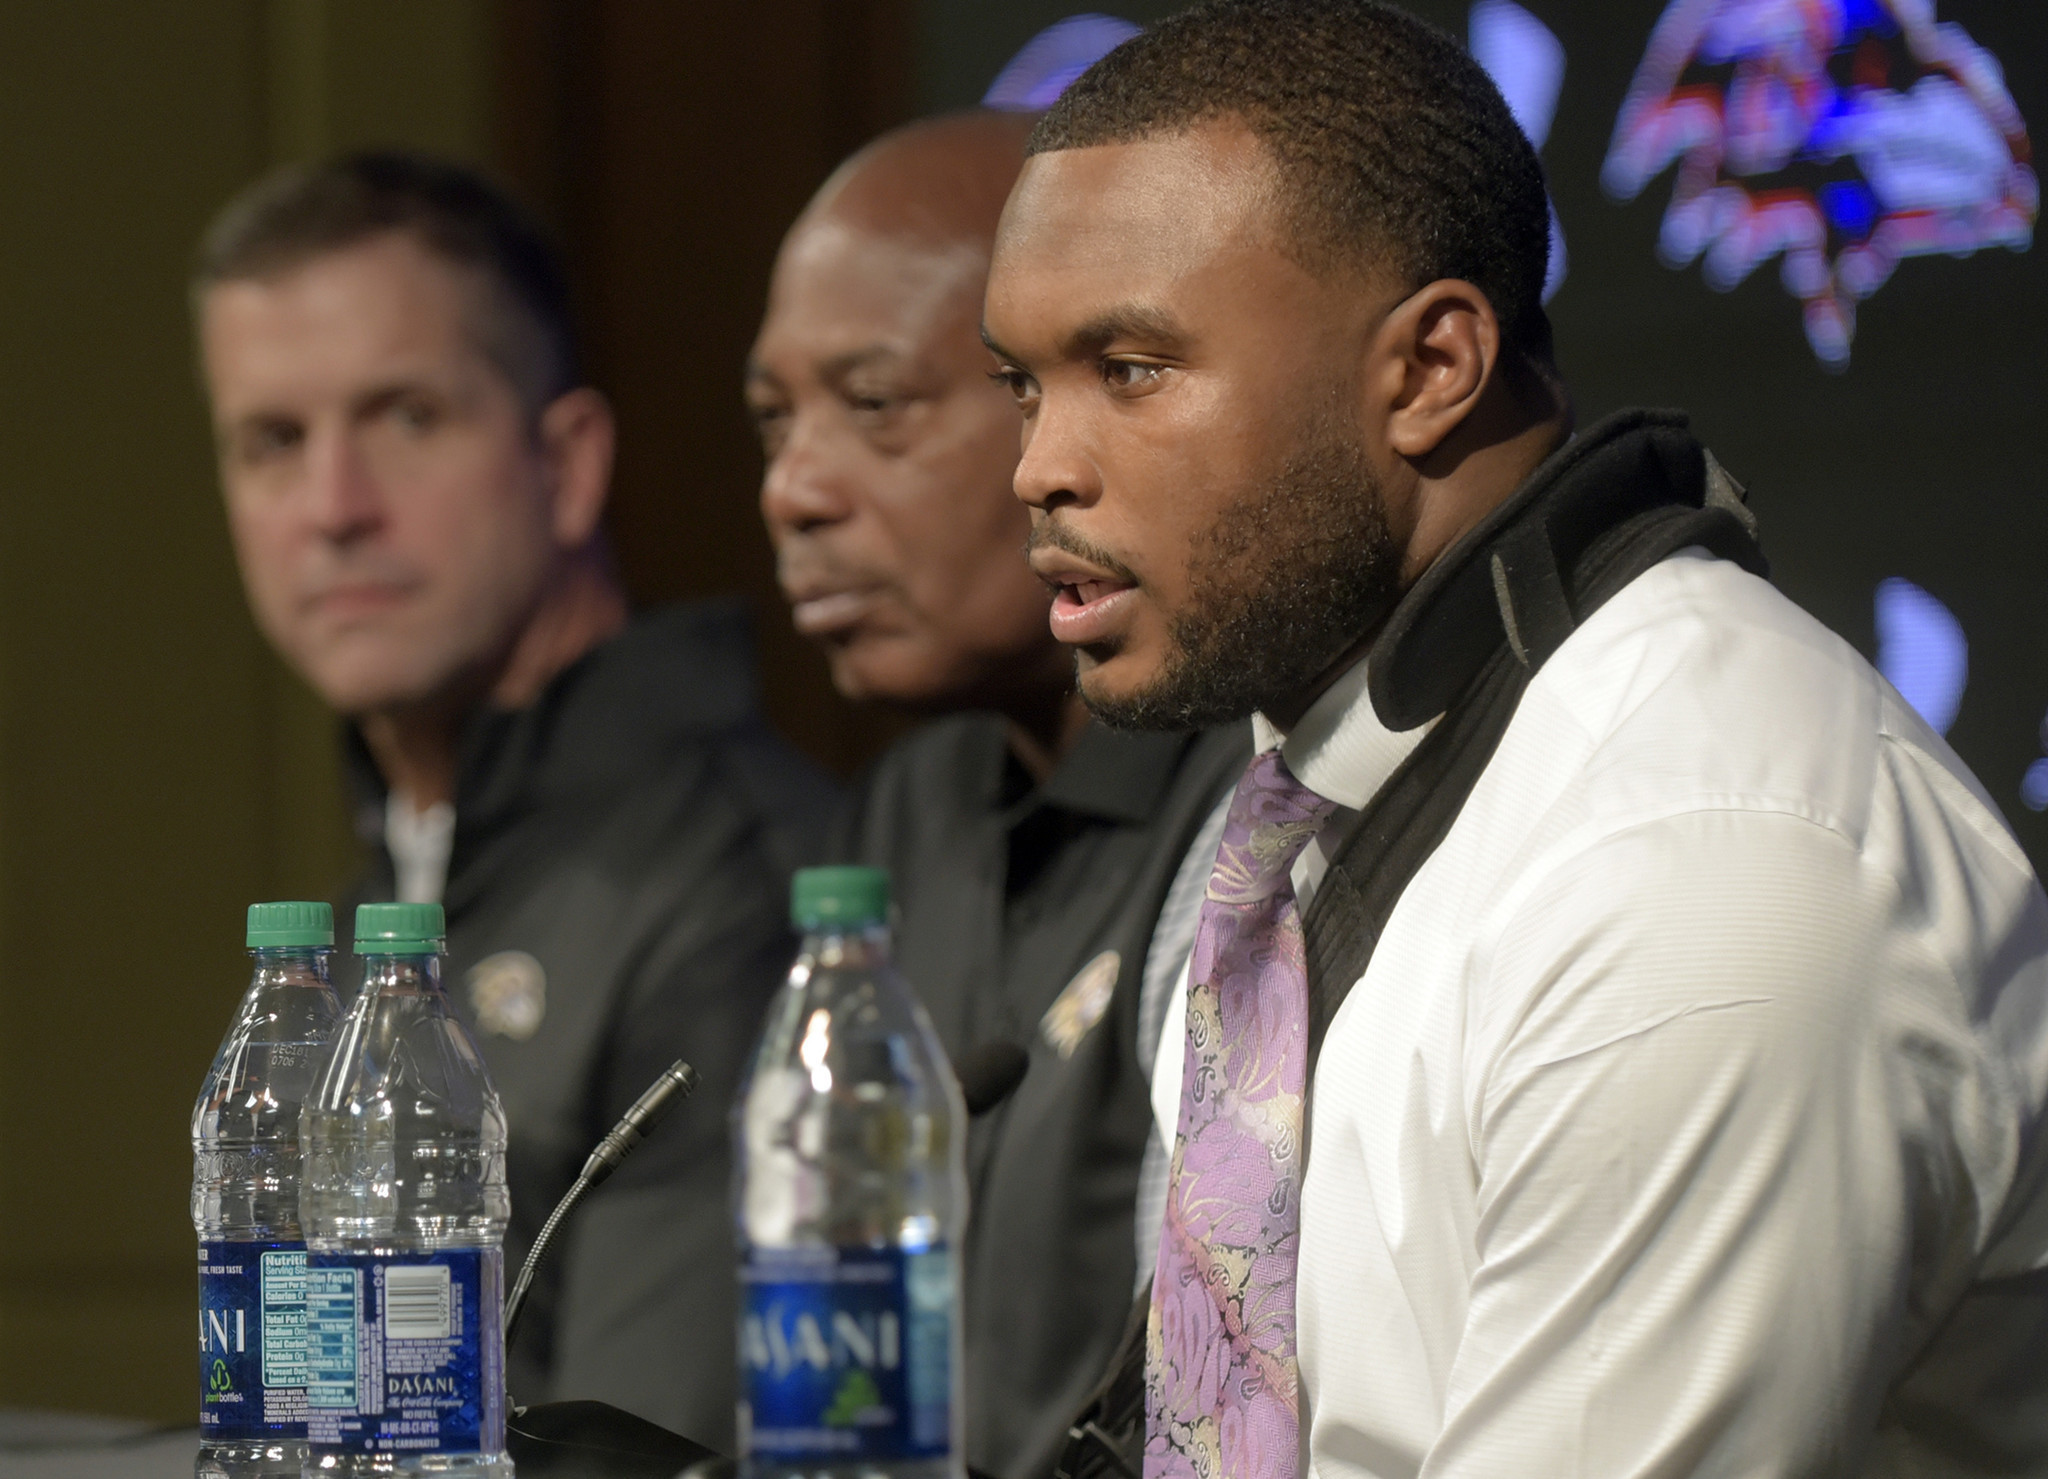 Zach orr retires due to congenital neckspine condition nfl com - Ravens Zachary Orr Announces Retirement Because Of Neck Injury Baltimore Sun